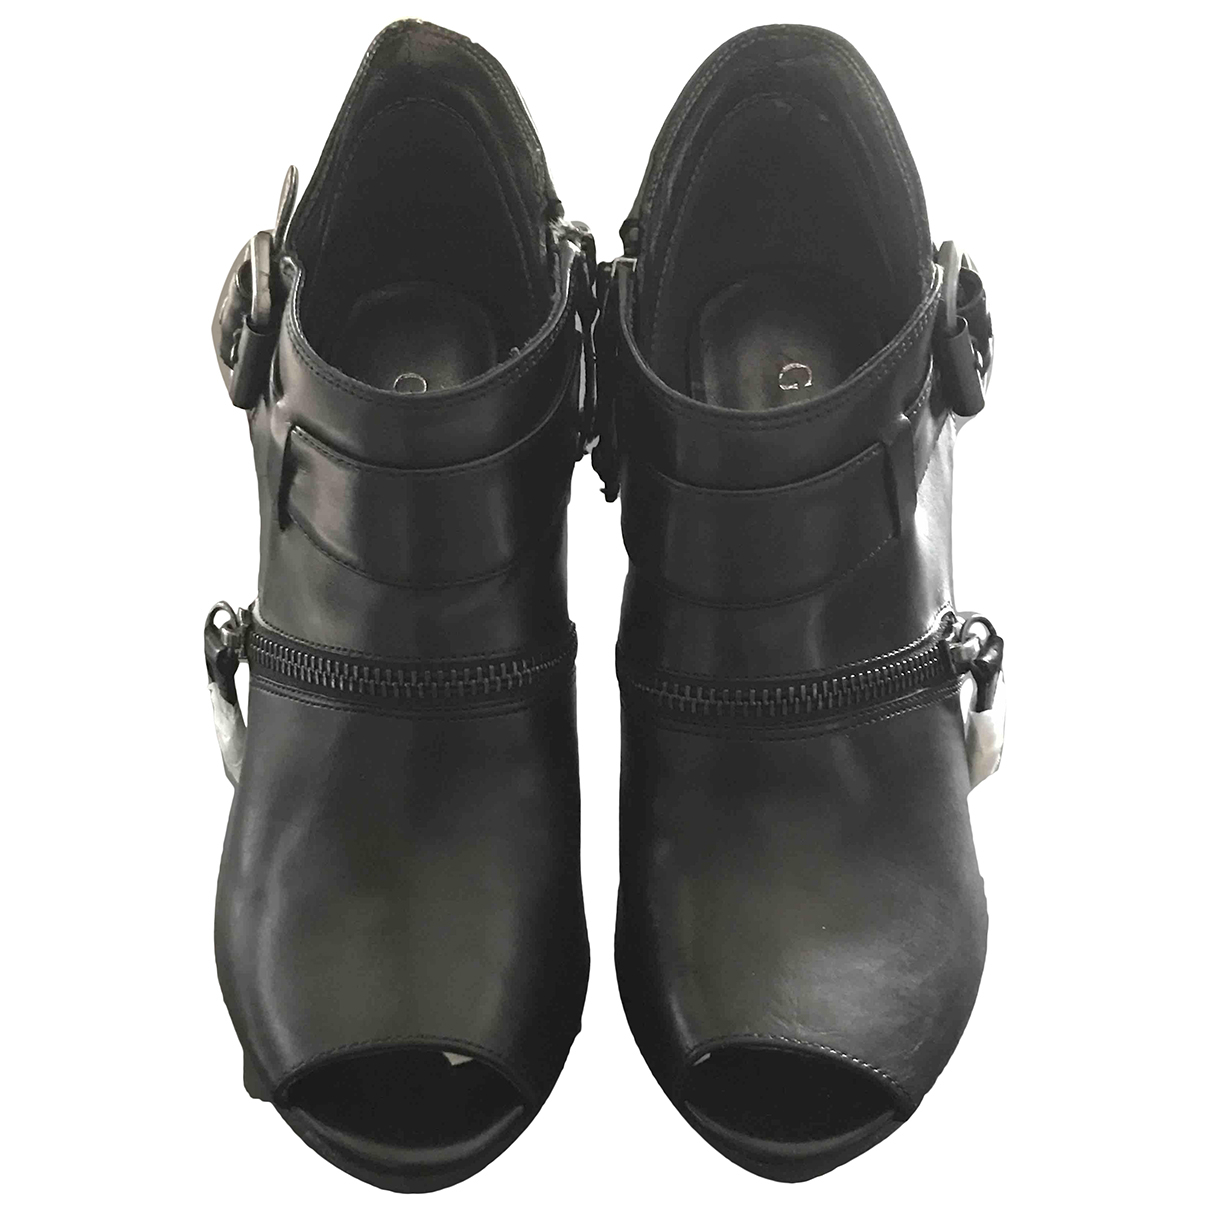 Guess N Black Leather Ankle boots for Women 36 EU